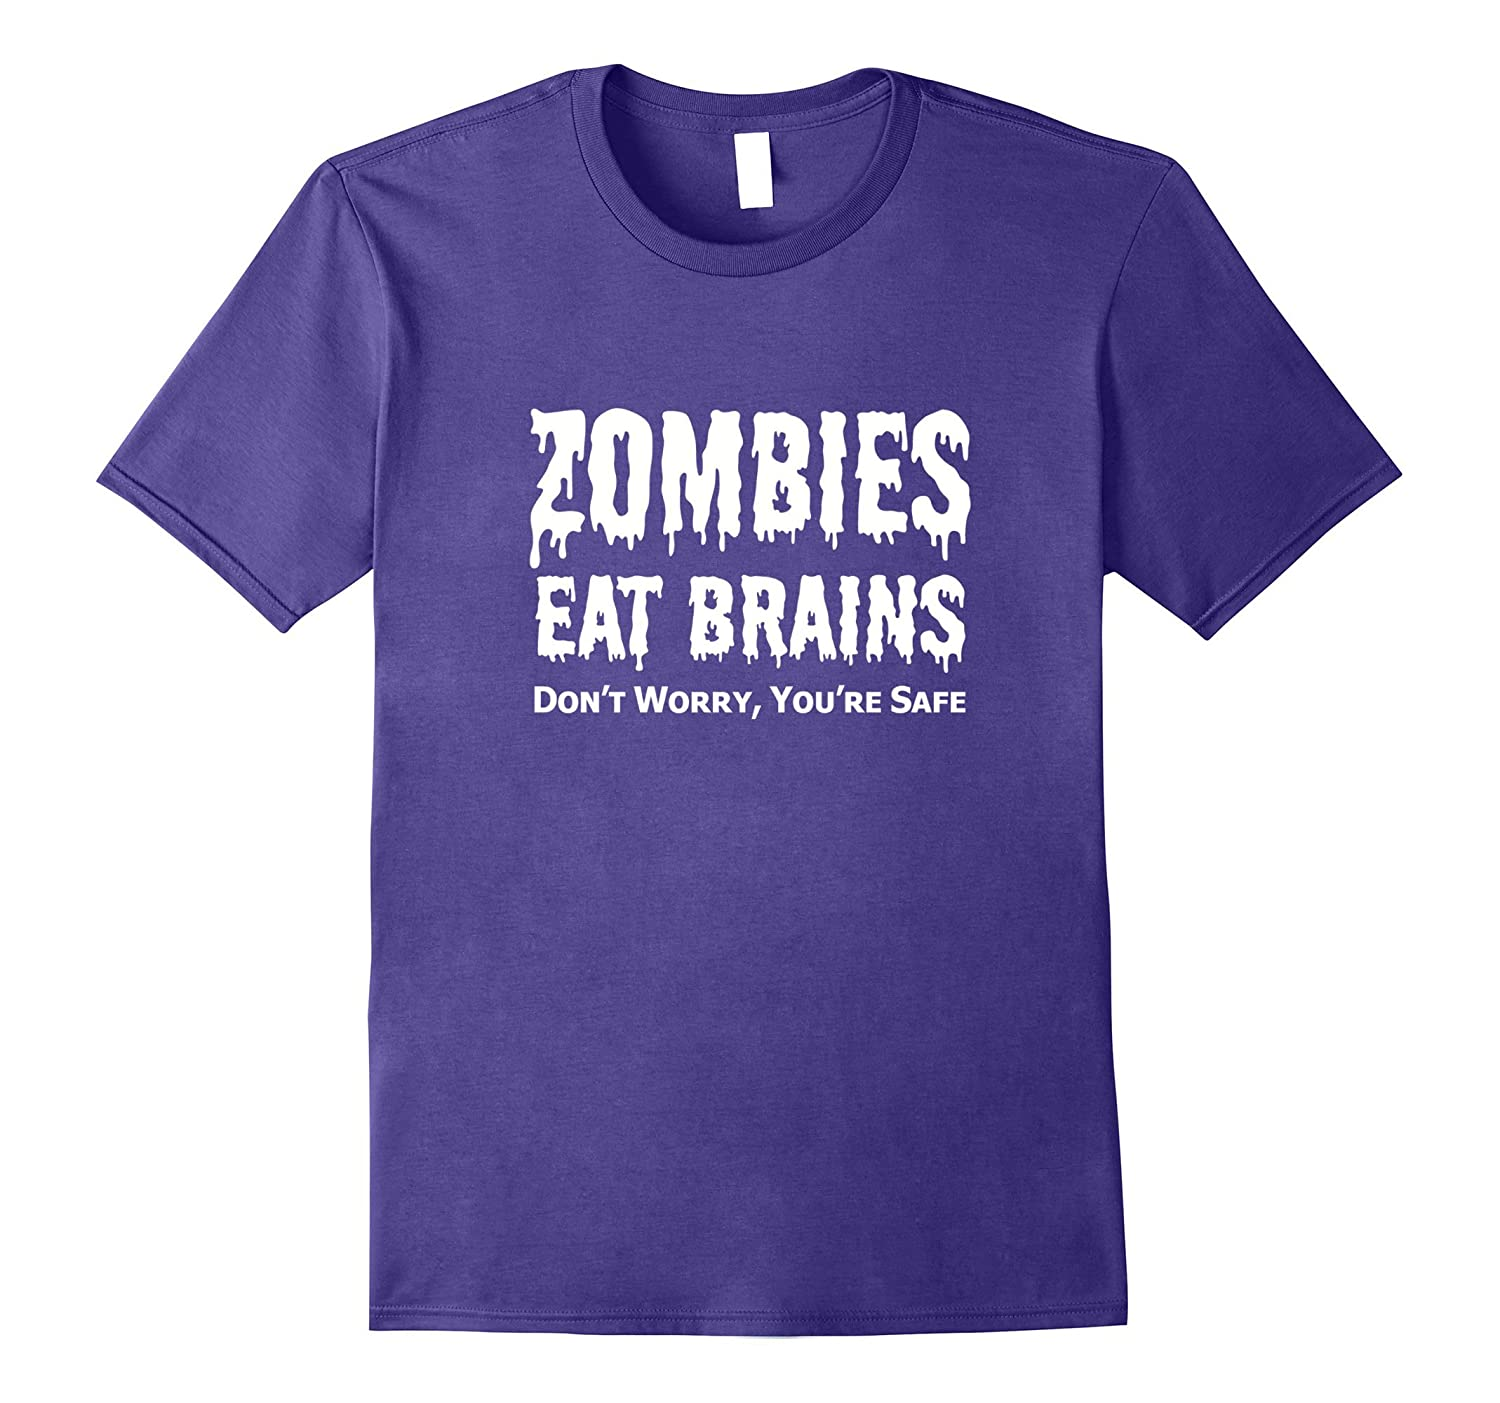 Zombies Eat Brains T-Shirt Funny Horror Lover Shirt-TJ